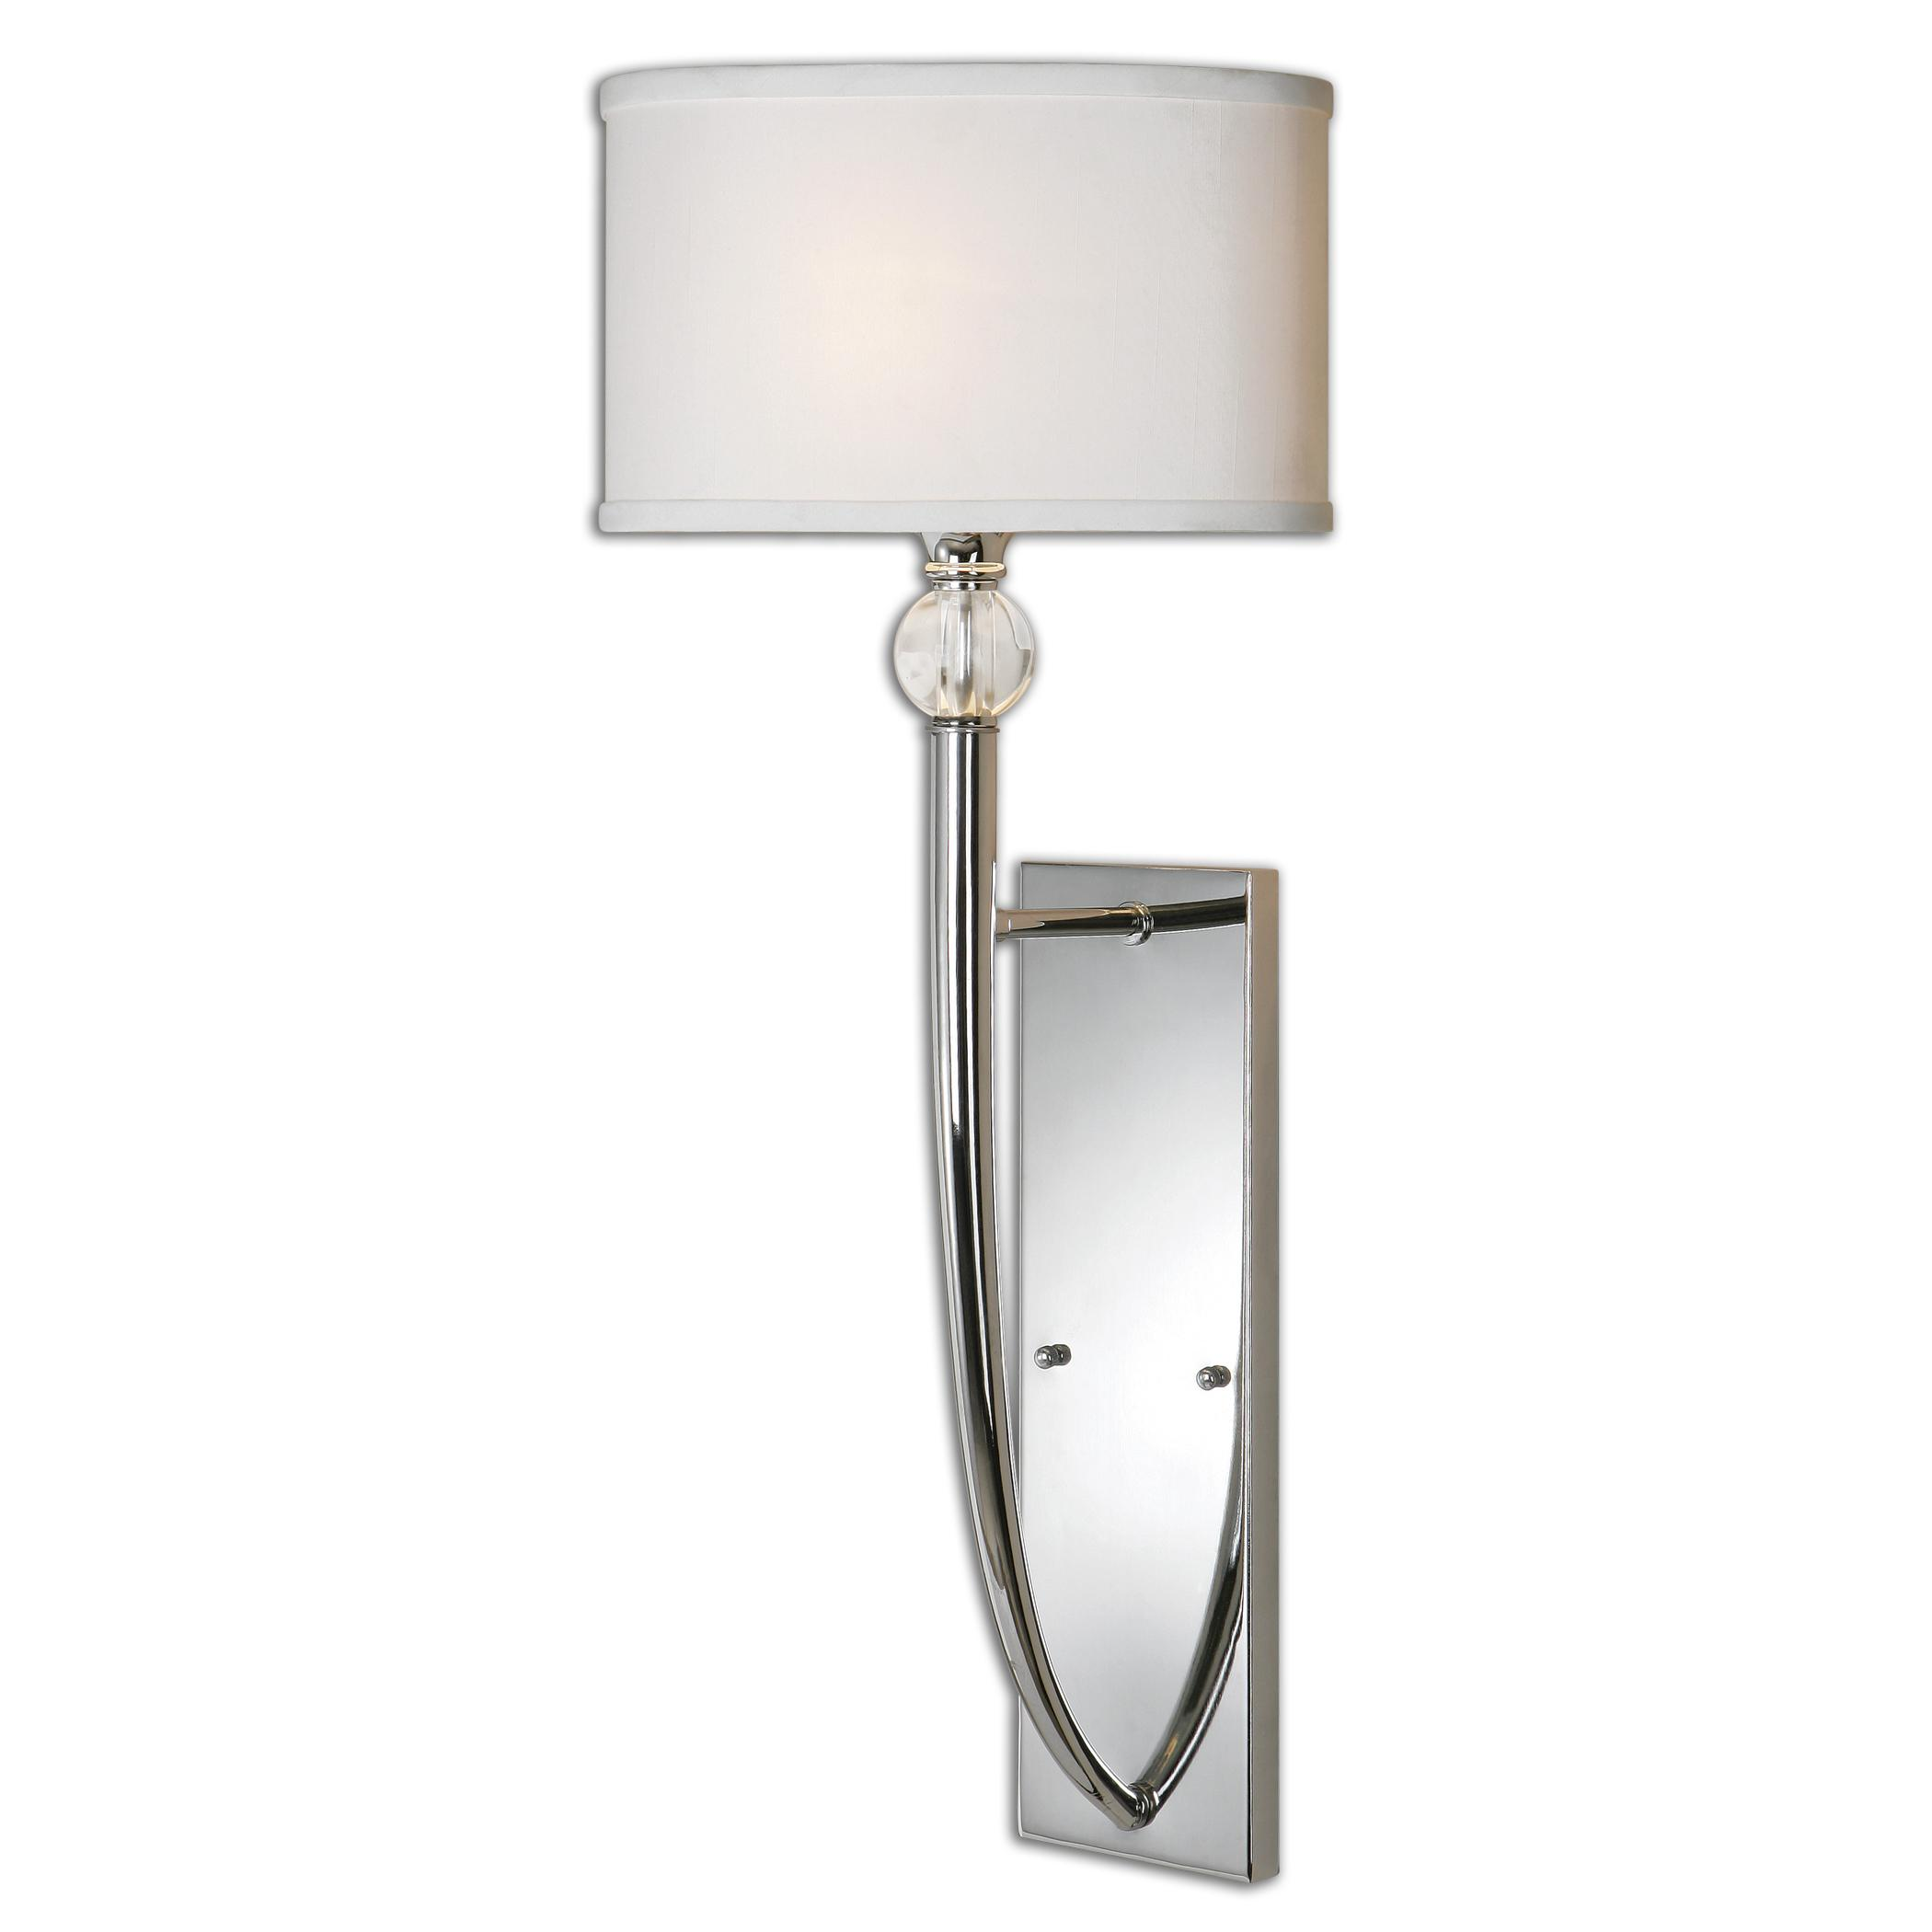 Uttermost Lighting Fixtures Uttermost Vanalen 1 Light Chrome Wall Sconce - Item Number: 22493